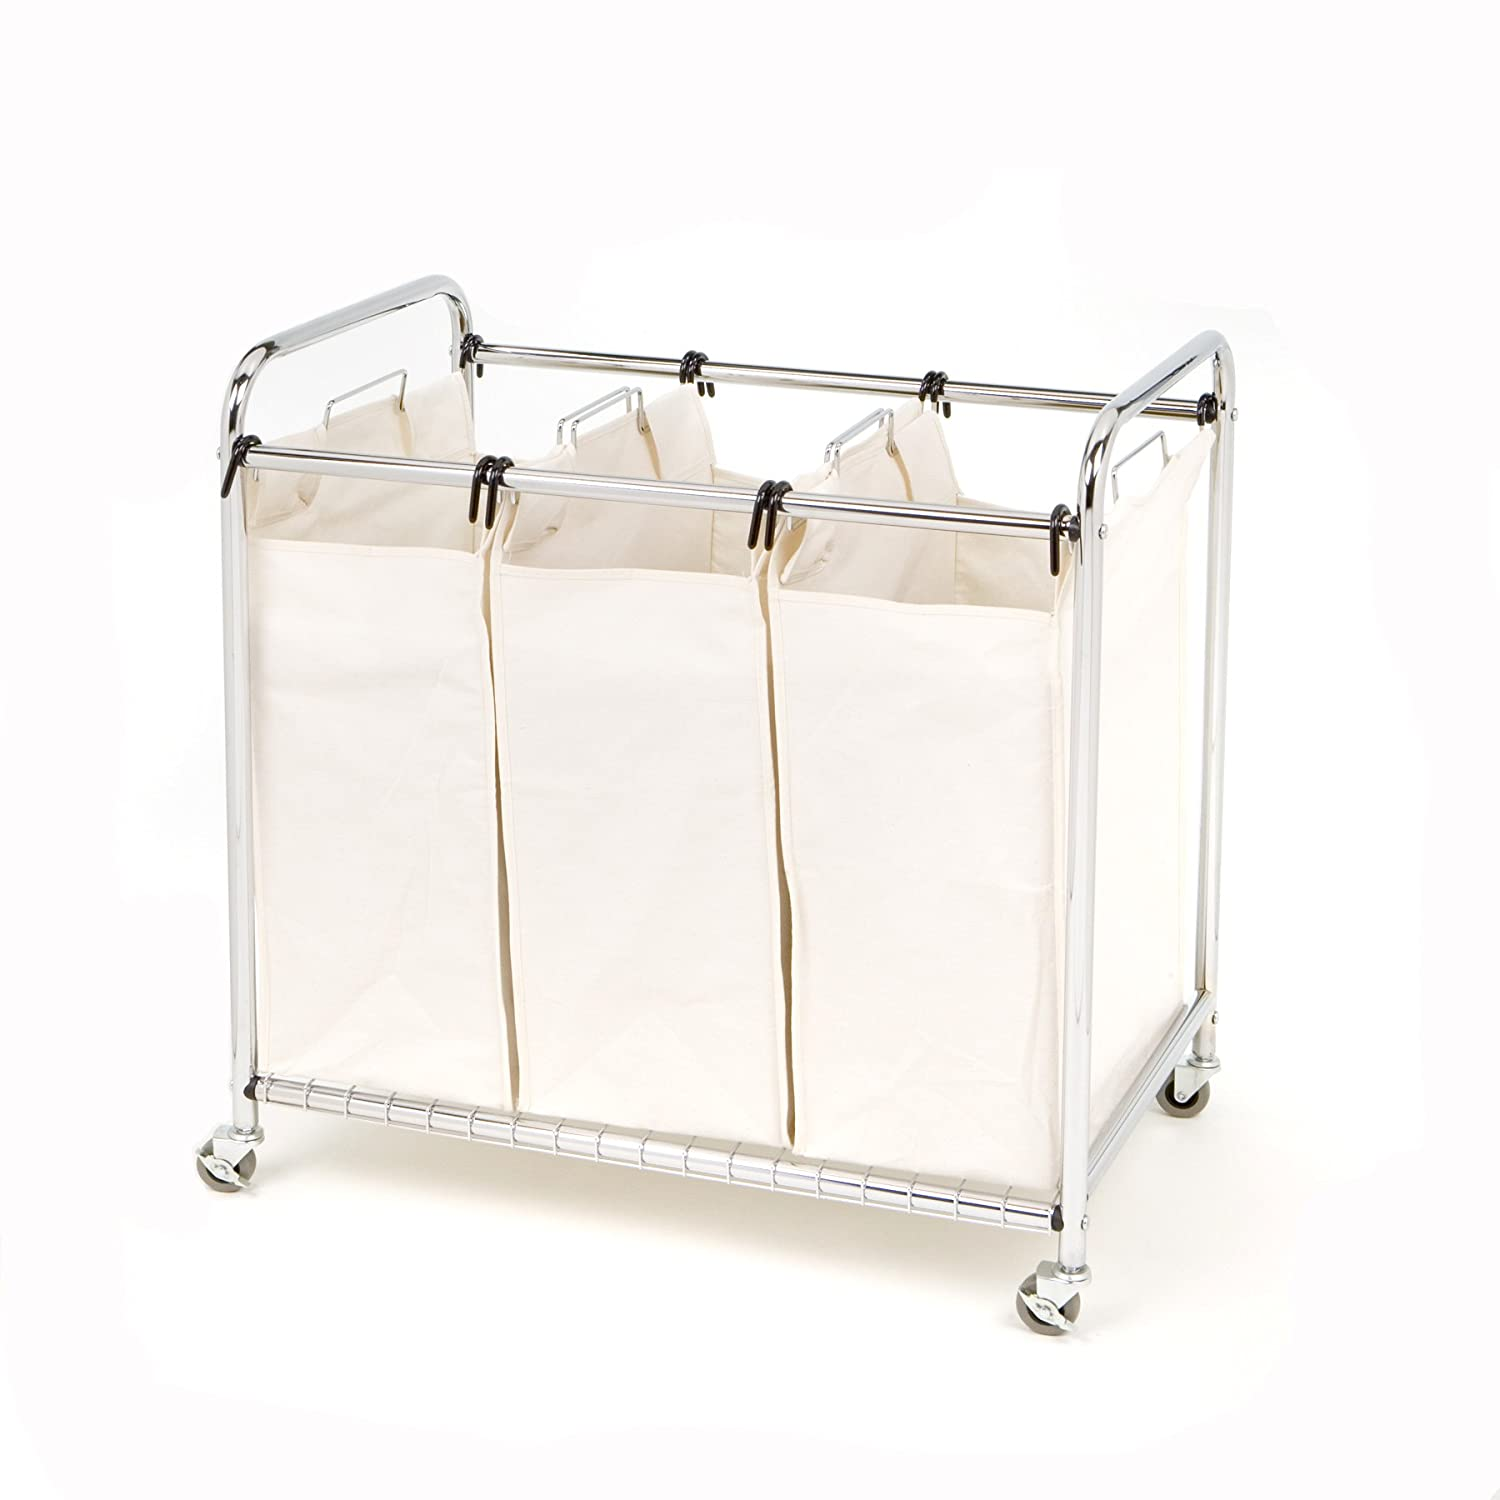 Top 10 Hampers/ Laundry Sorters - Grace Brooke, LLC